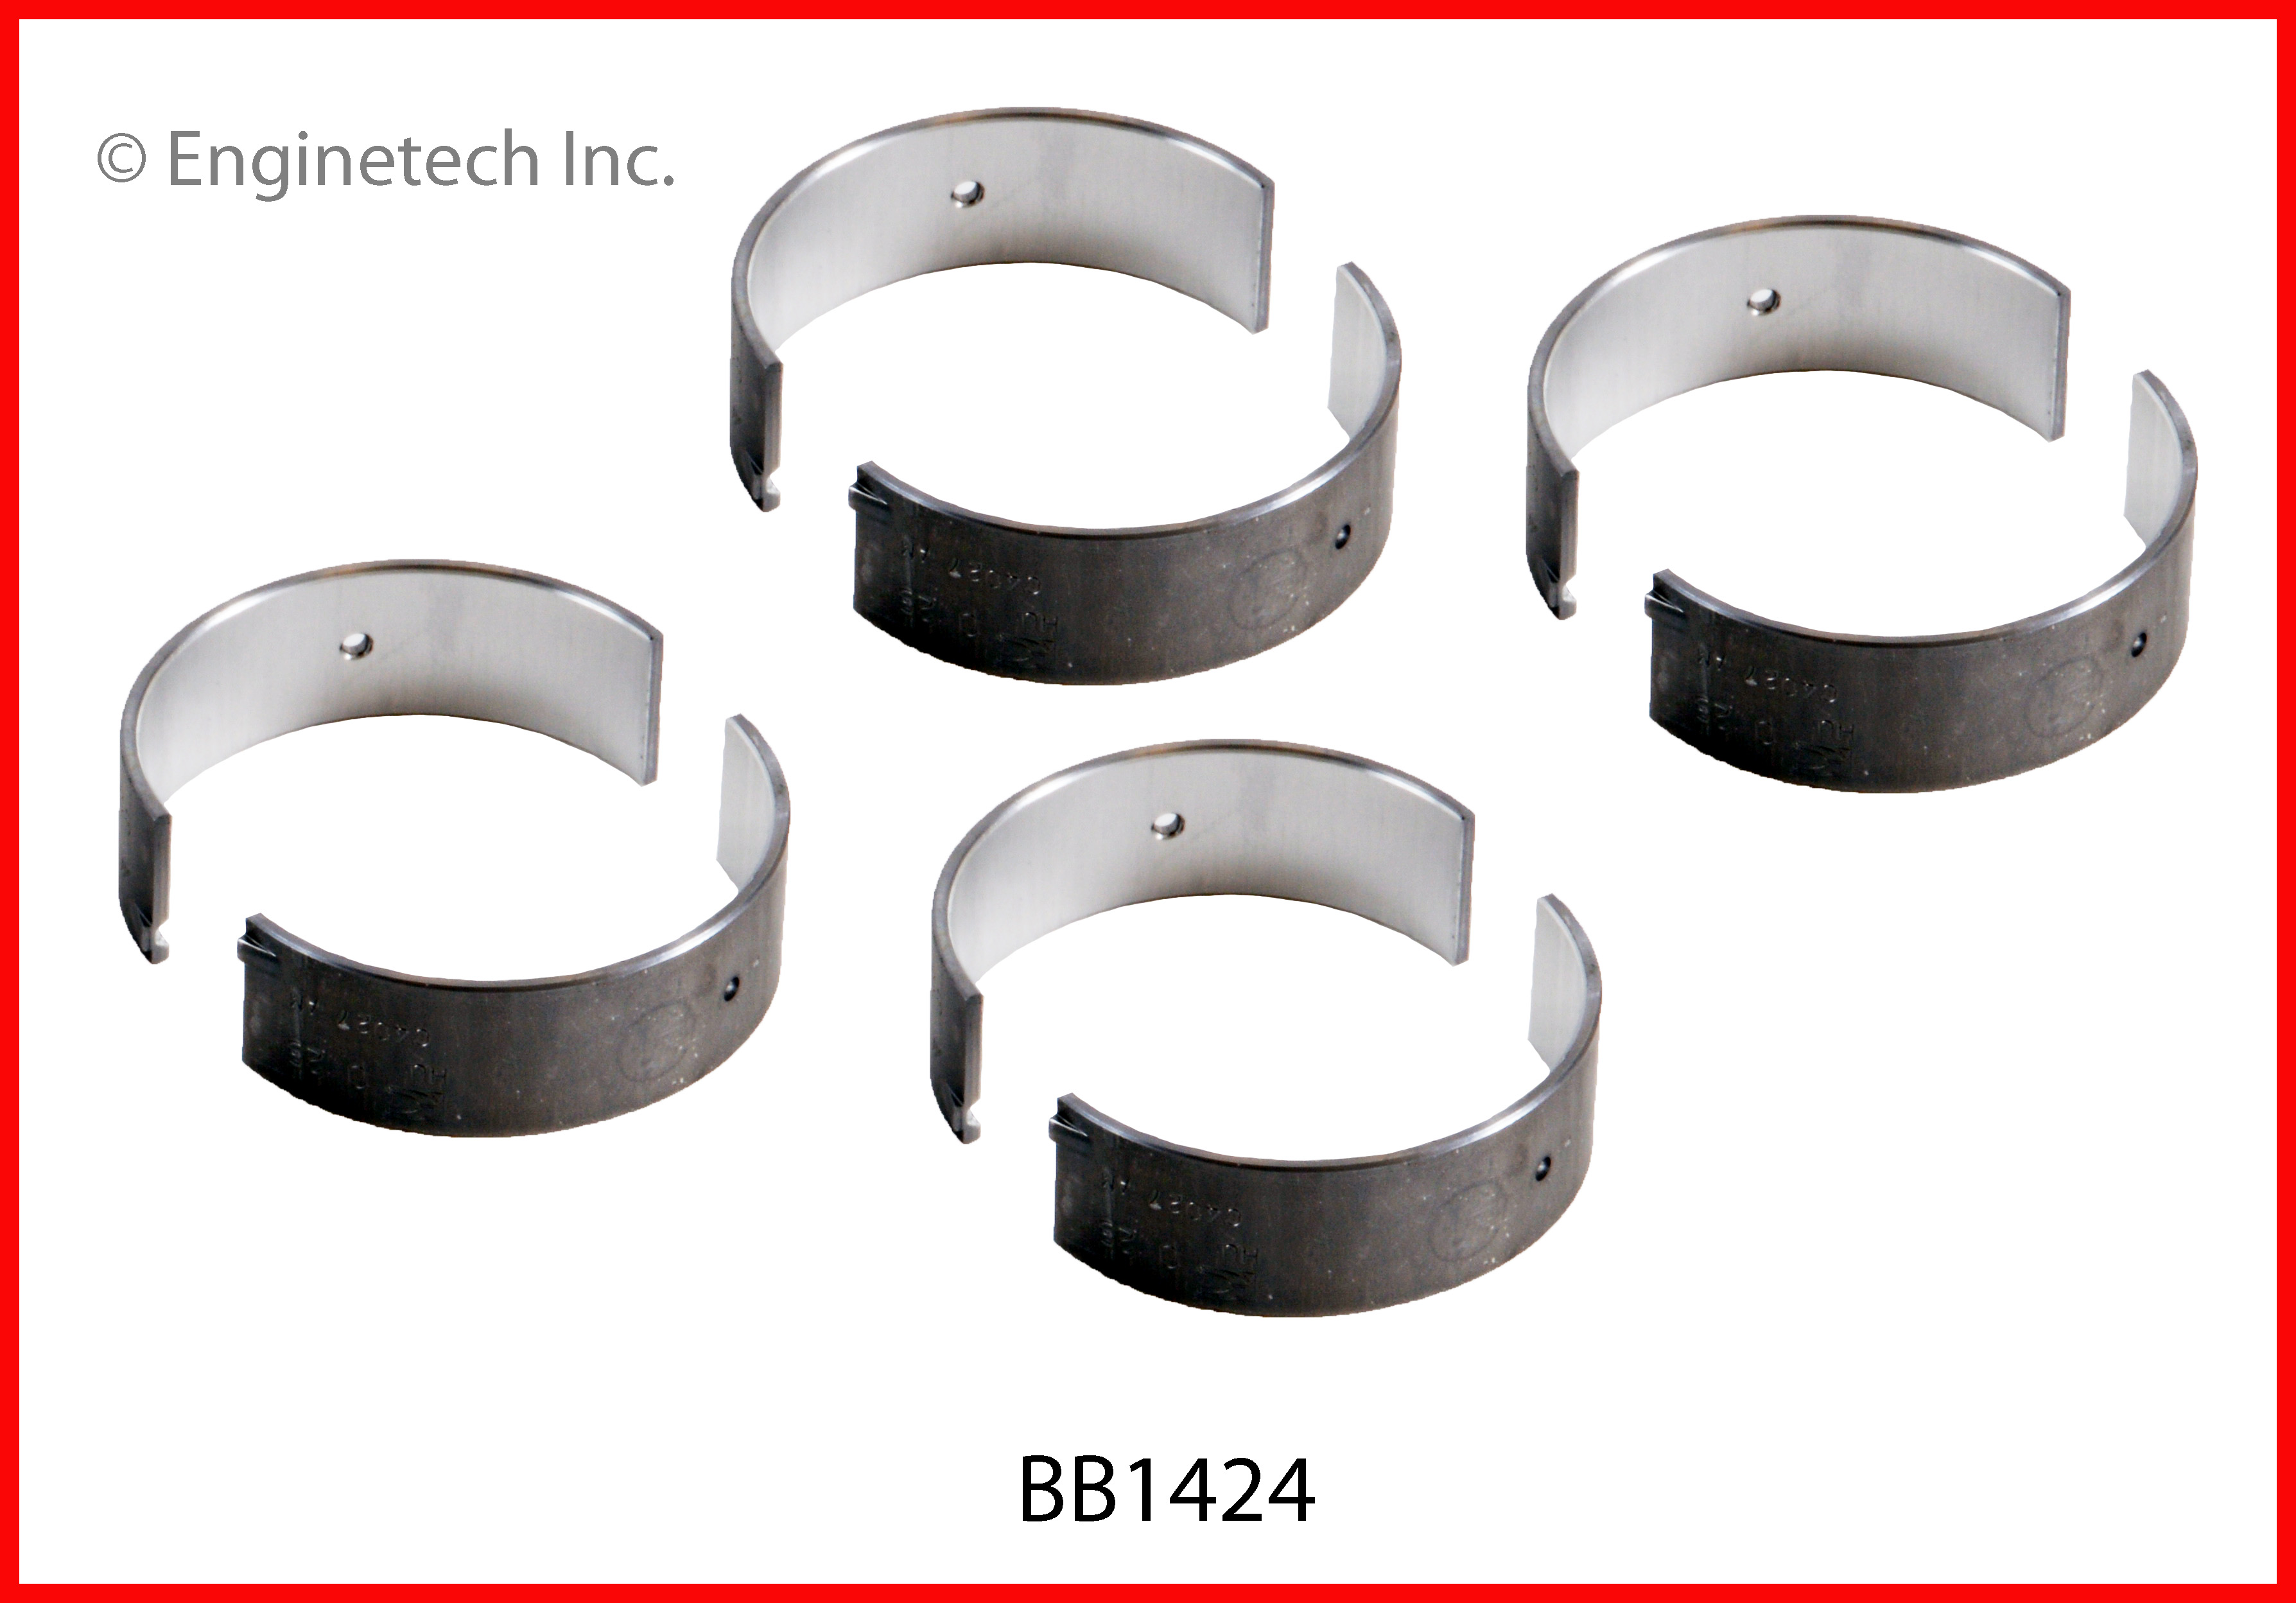 BB1424 Bearing Set - Rod Enginetech